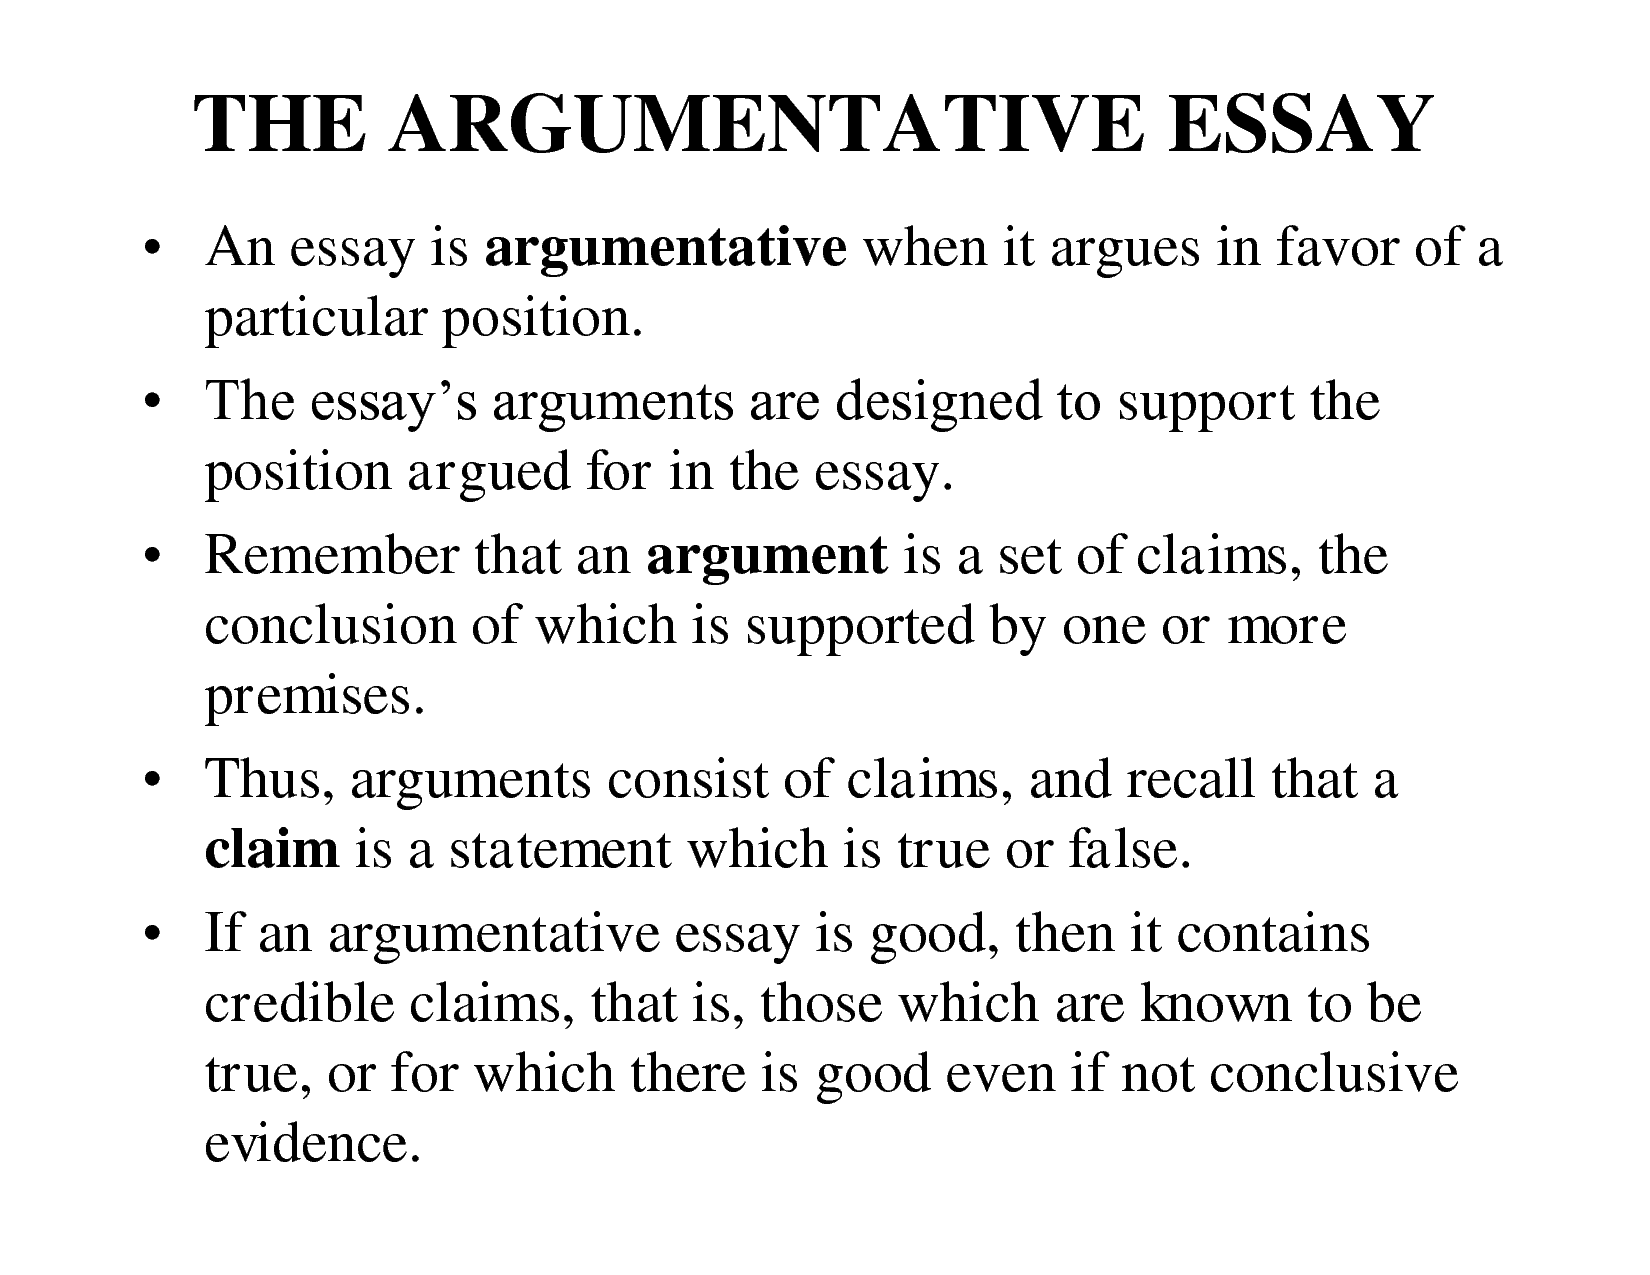 structure of an essay argument To write an effective argument essay, you must be able to research a topic and  provide solid, convincing evidence to support your stance.